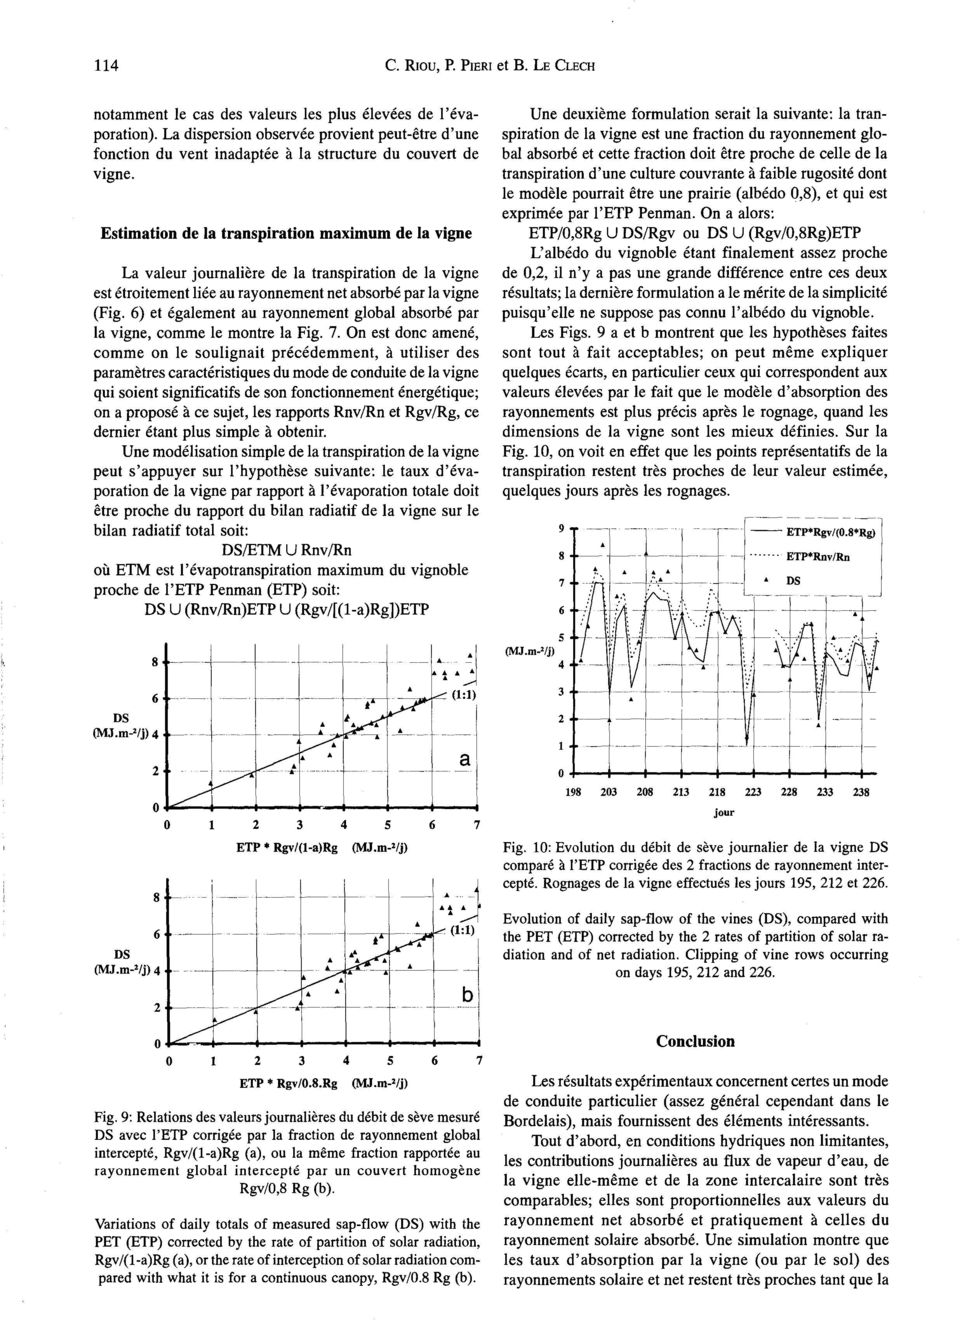 Estimation de la transpiration maximum de la vigne La valeur journaliere de la transpiration de la vigne est etroitement lies au rayonnement net absorbe par la vigne (Fig.